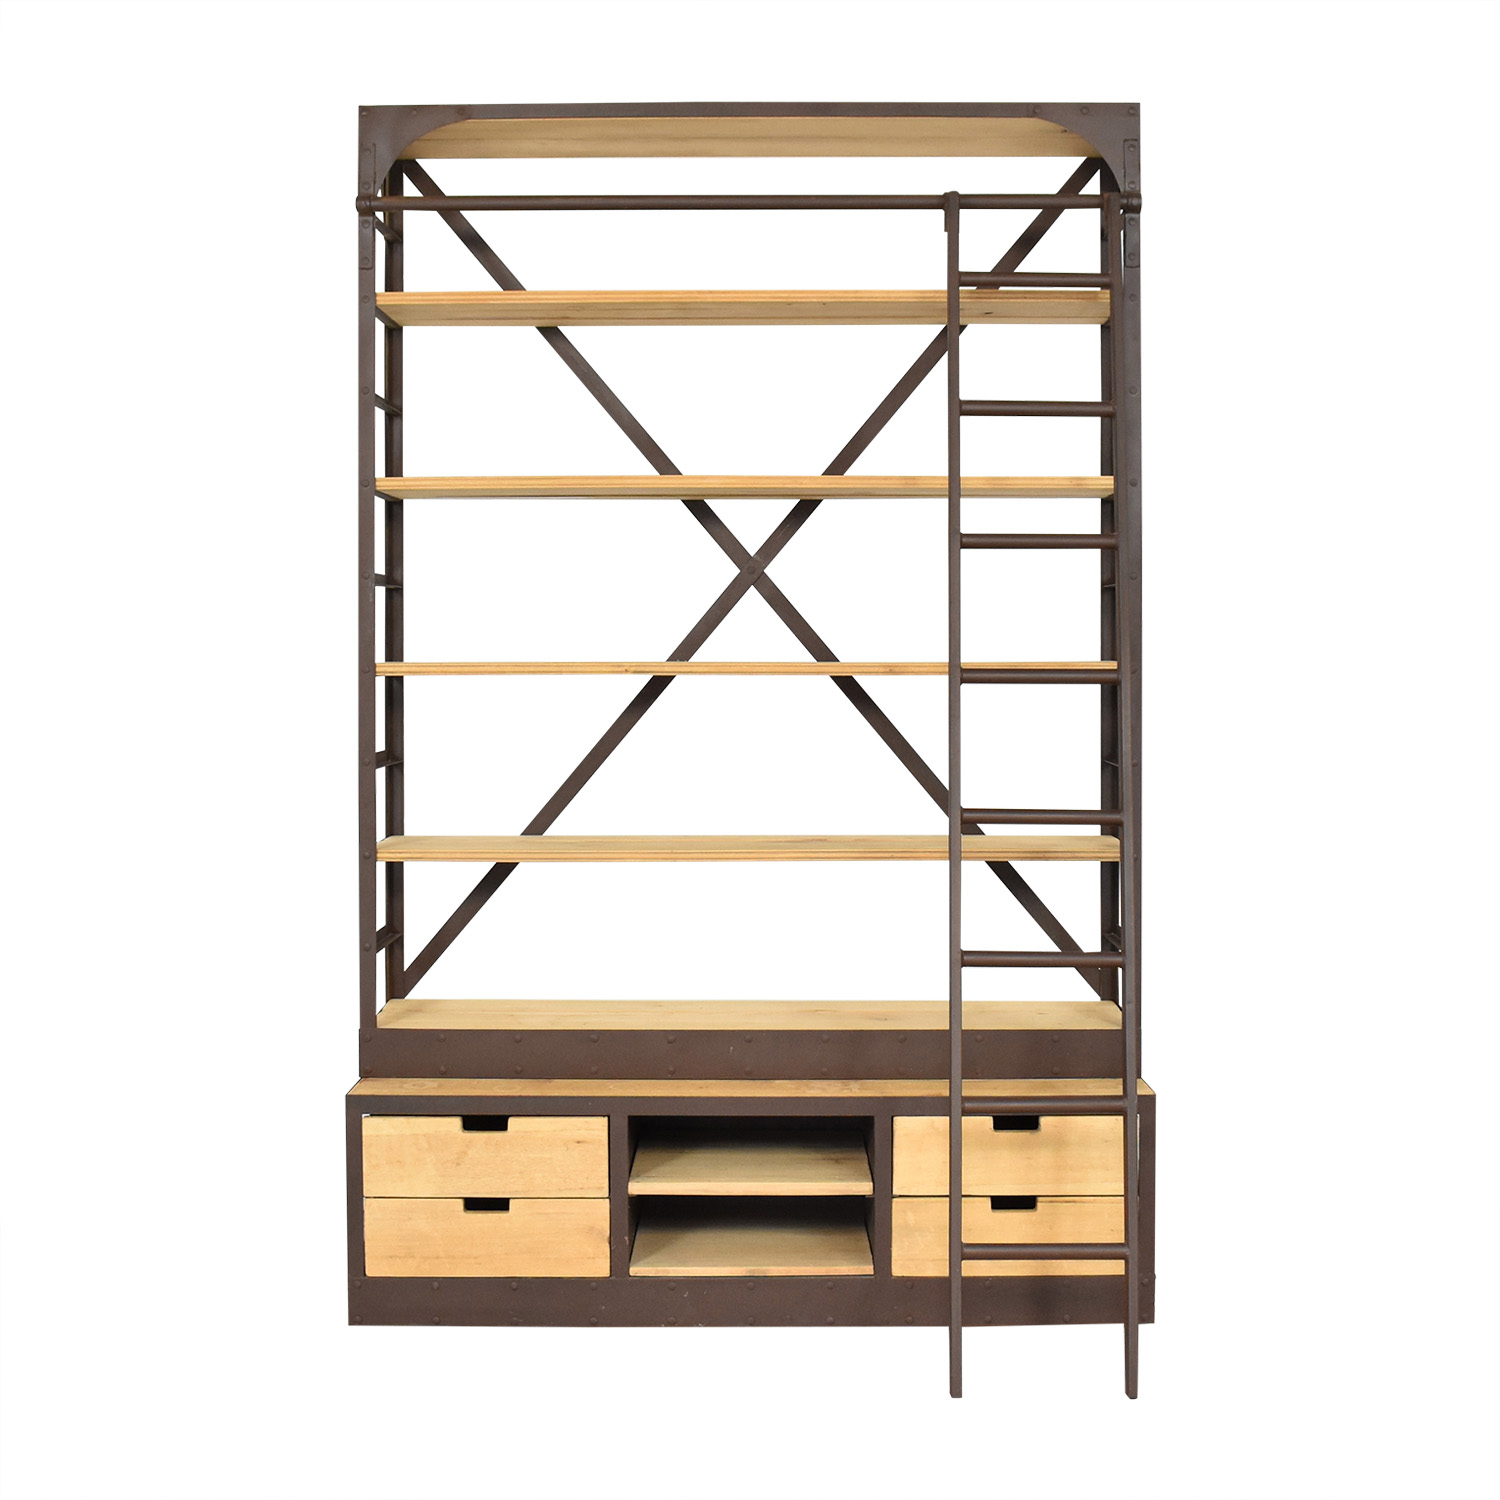 Restoration Hardware 1950s Dutch Shipyard Triple Shelving / Storage